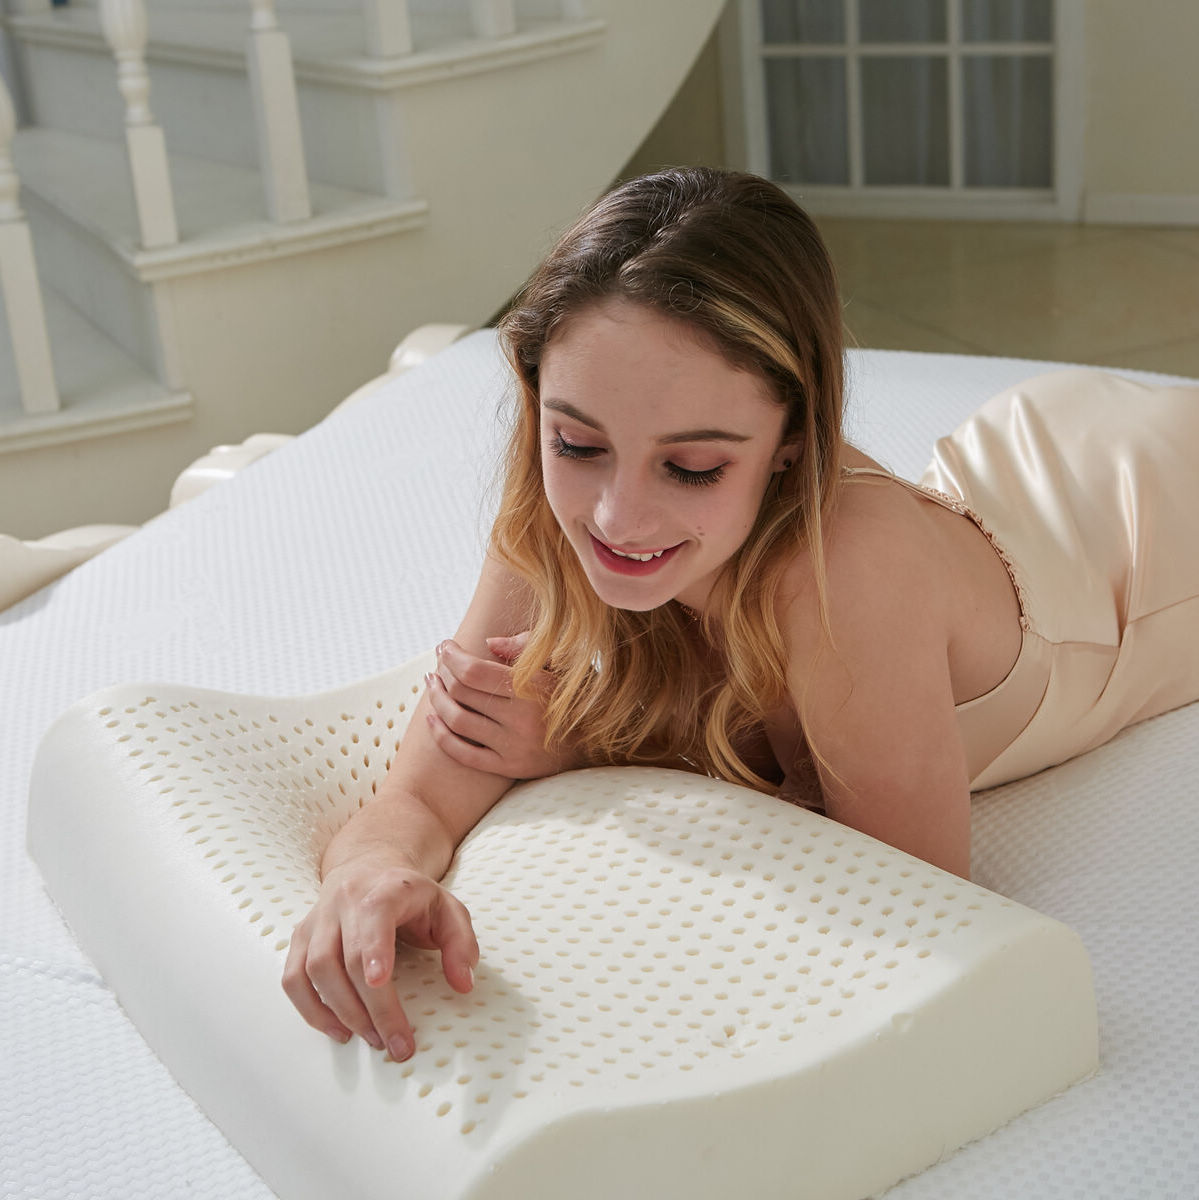 Bedding Pillow Memory font b Physical b font Therapy Massage The Snoring Bed Pillows Travel Memory